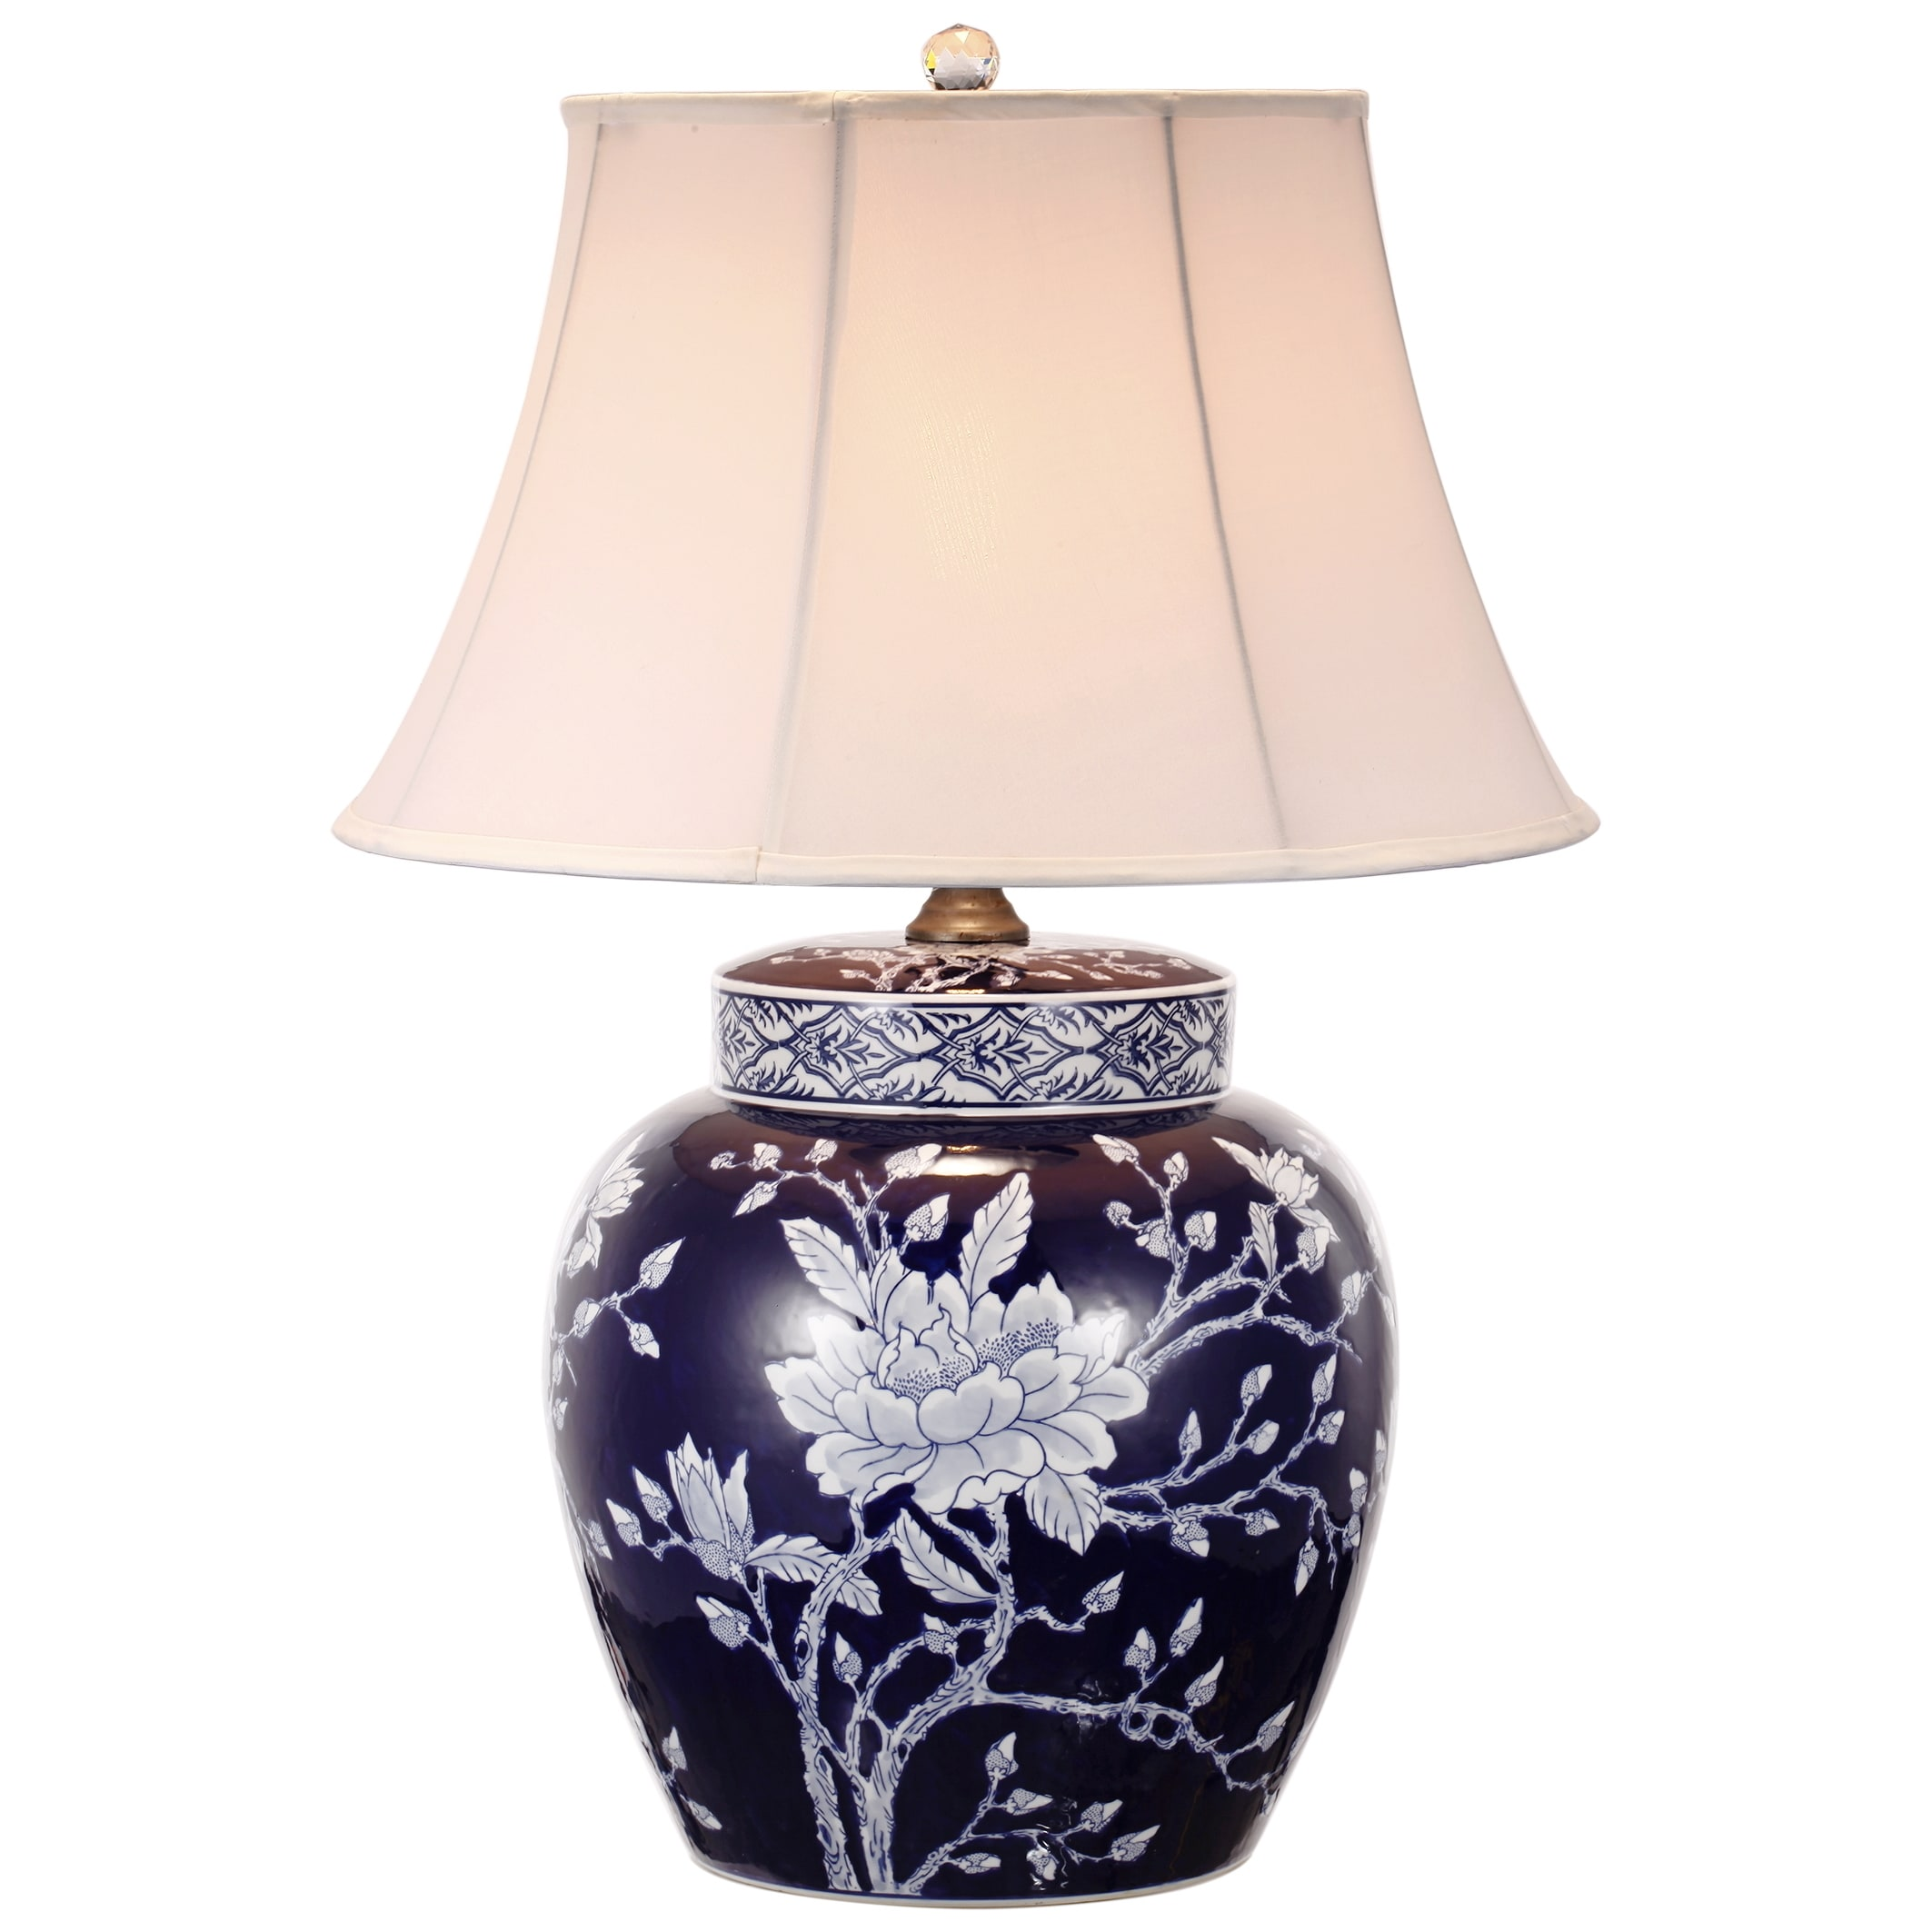 Berkshire Ceramic Table Lamp (Ceramic Table Lamp), Blue